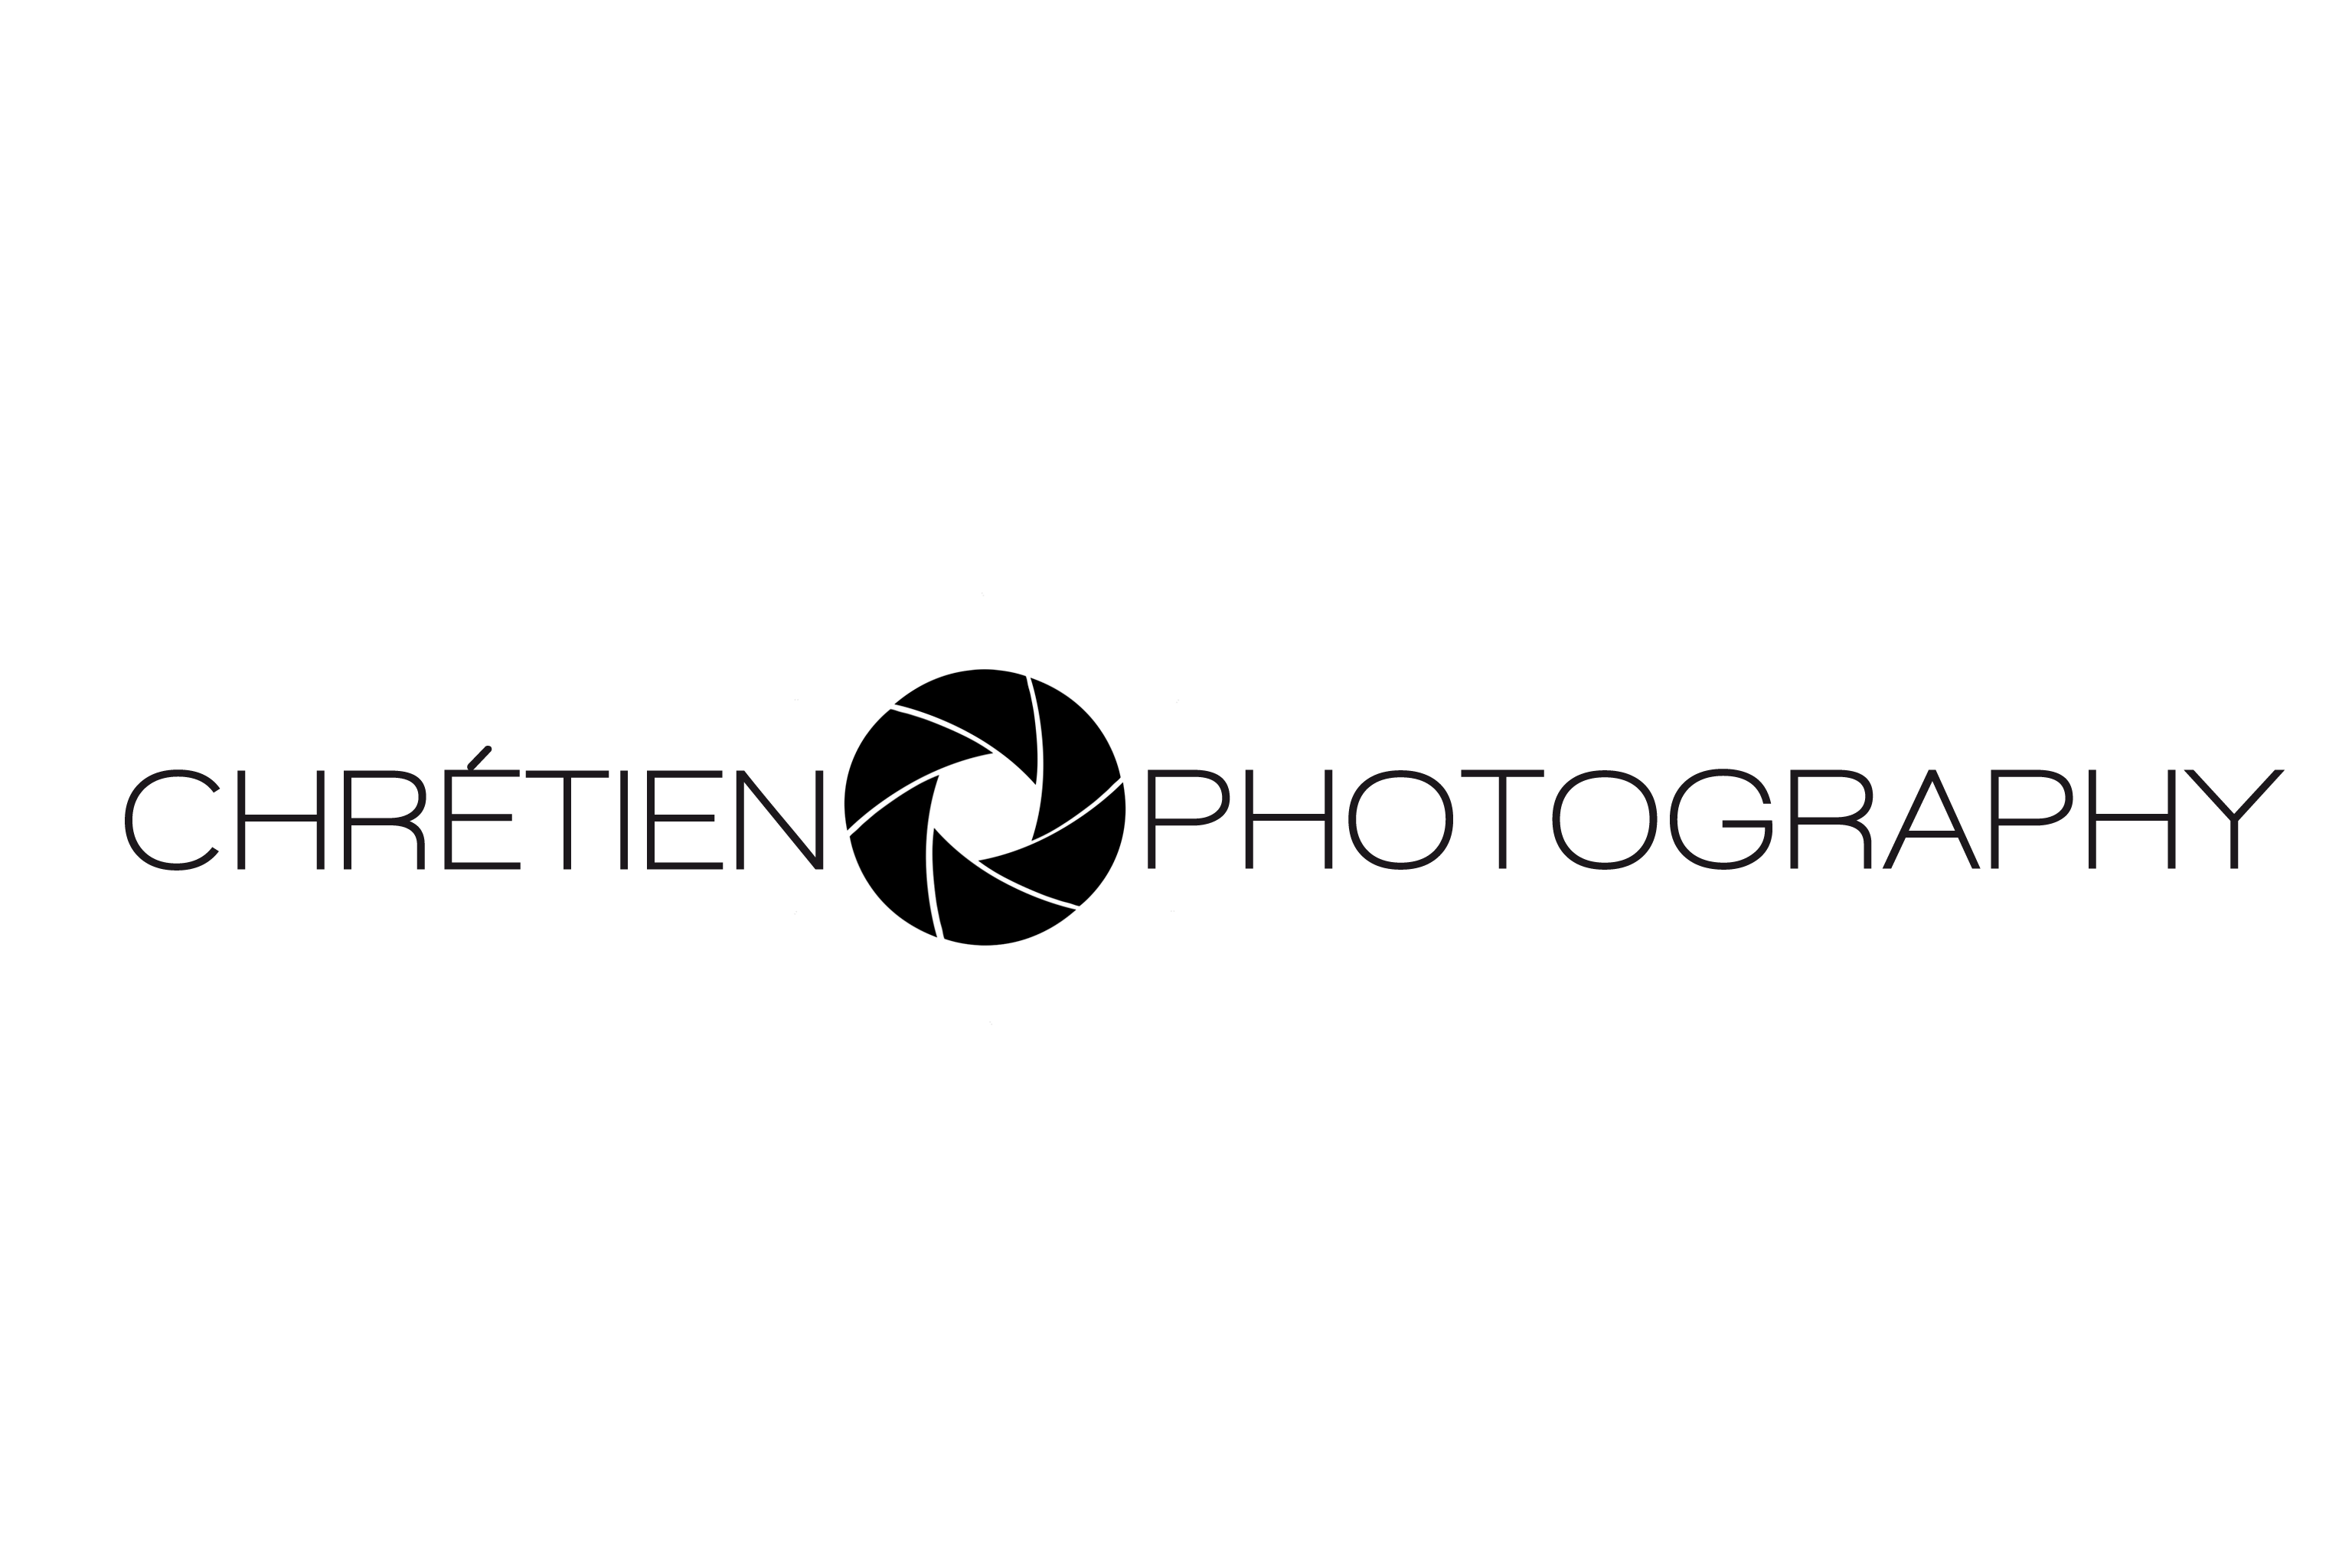 logo for photography watermark the tech game